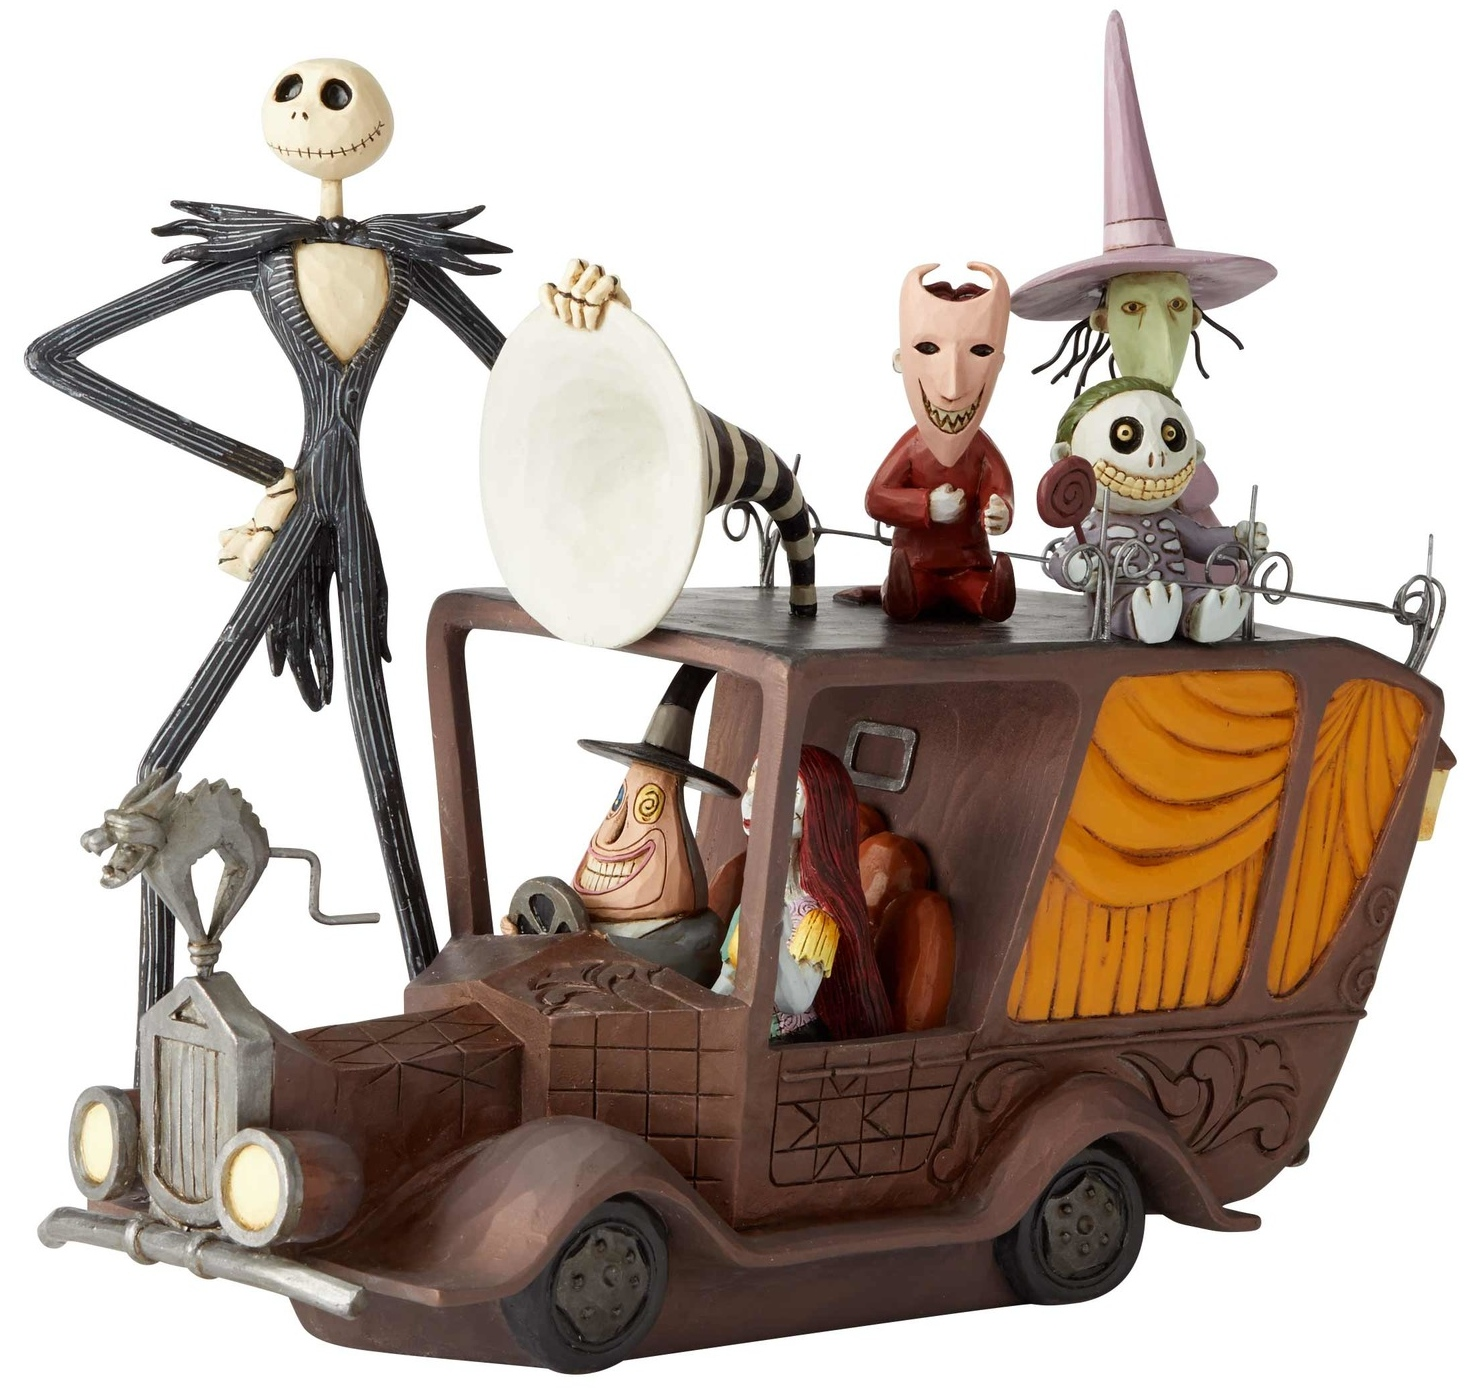 Disney Traditions by Jim Shore 6002841 Jack Skellington